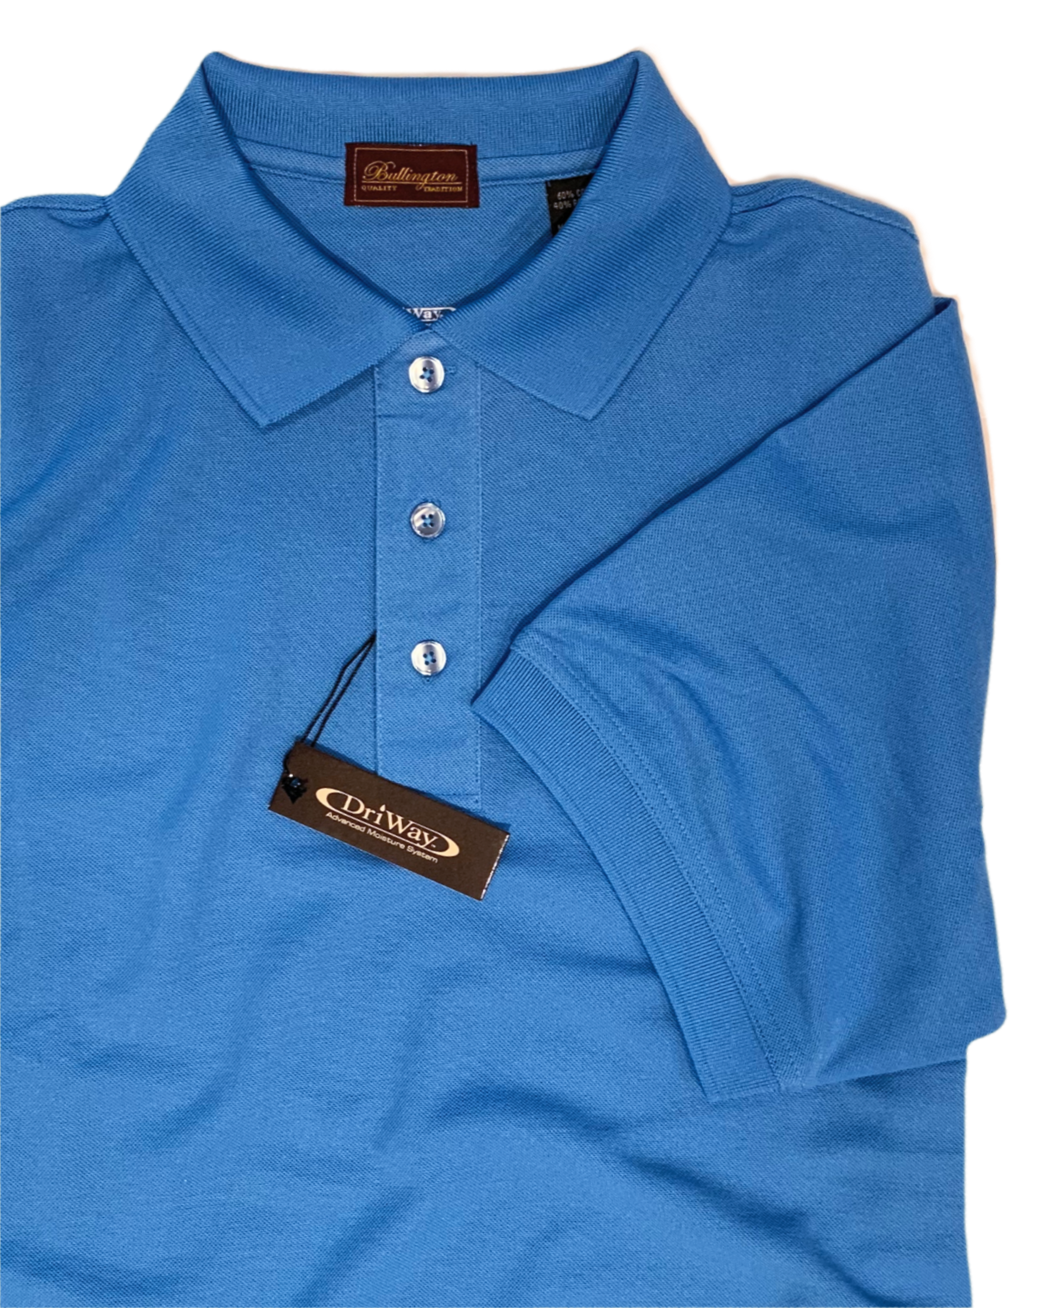 MARLIN MOISTURE WICKING GOLF SHIRT